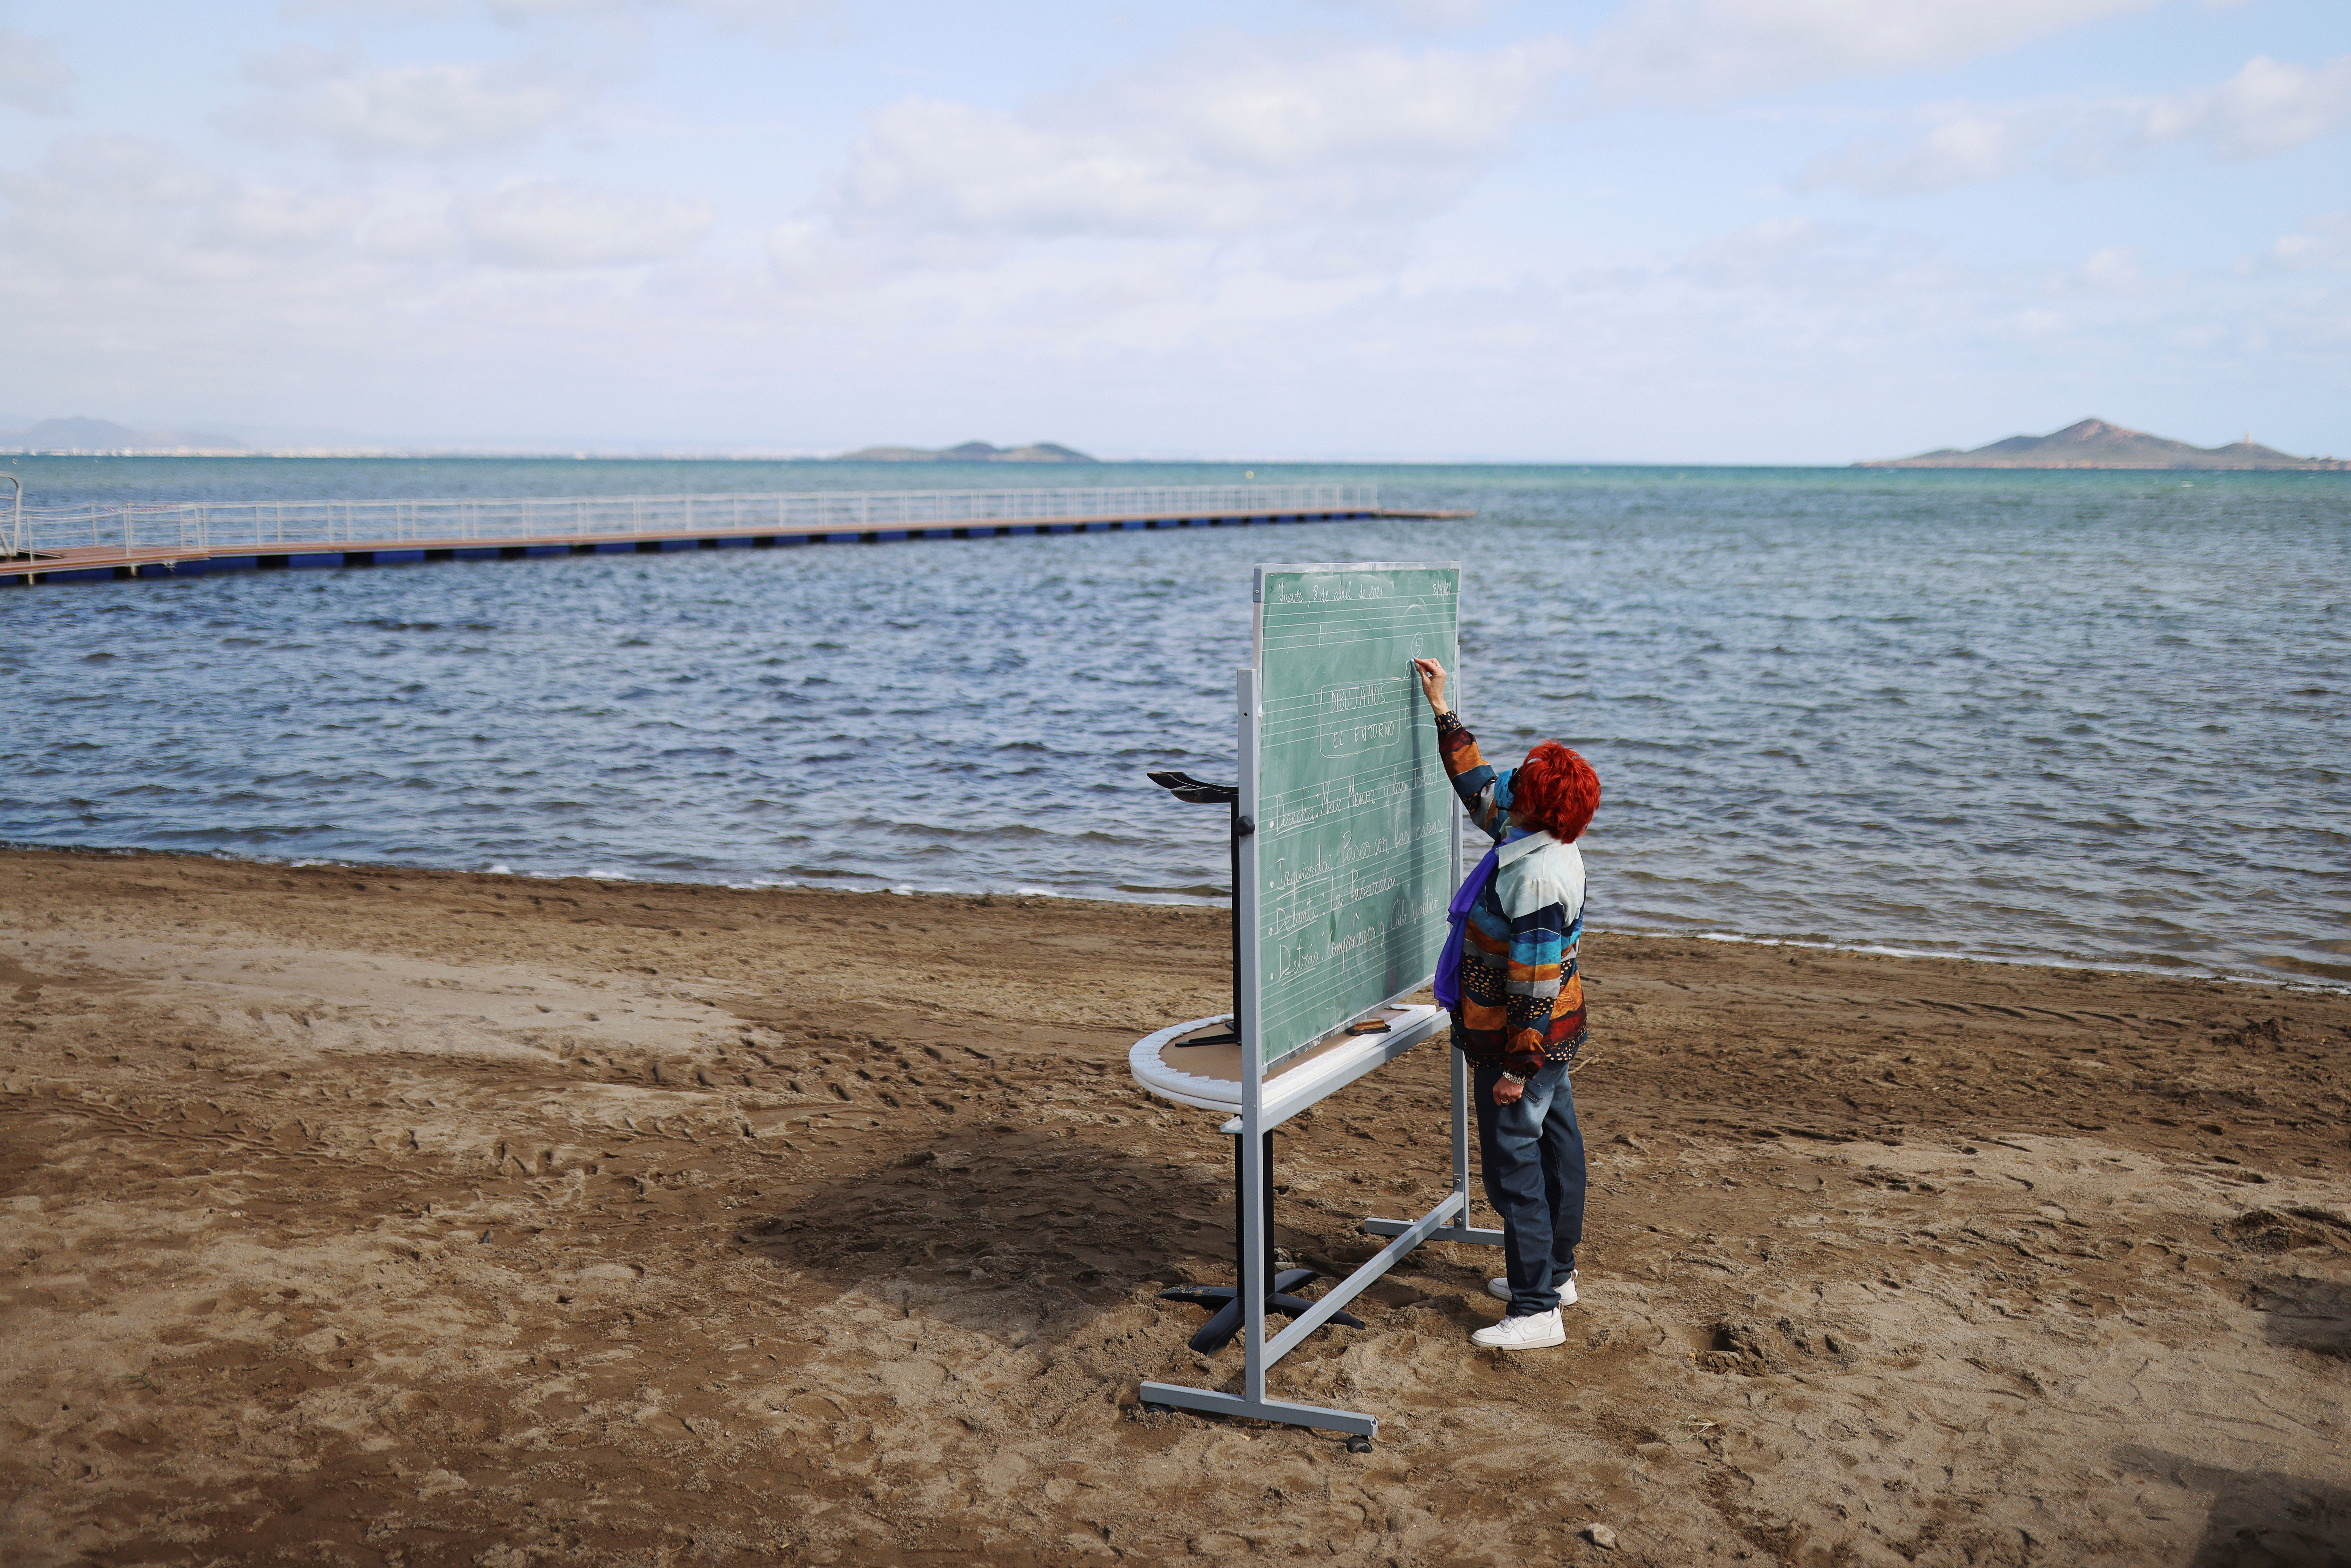 A teacher teaches a class to students (not pictured) of the Felix Rodriguez de la Fuente school, as part of a project known as 'Aire Limpio' (Fresh Air) at the Playa de los Nietos (The Grandchildren's Beach), which aims to use better air quality for children during the coronavirus disease (COVID-19) pandemic, near Cartagena, southern Spain April 8, 2021. Picture taken April 8, 2021. REUTERS/Nacho Doce     TPX IMAGES OF THE DAY - RC29UM9X927W